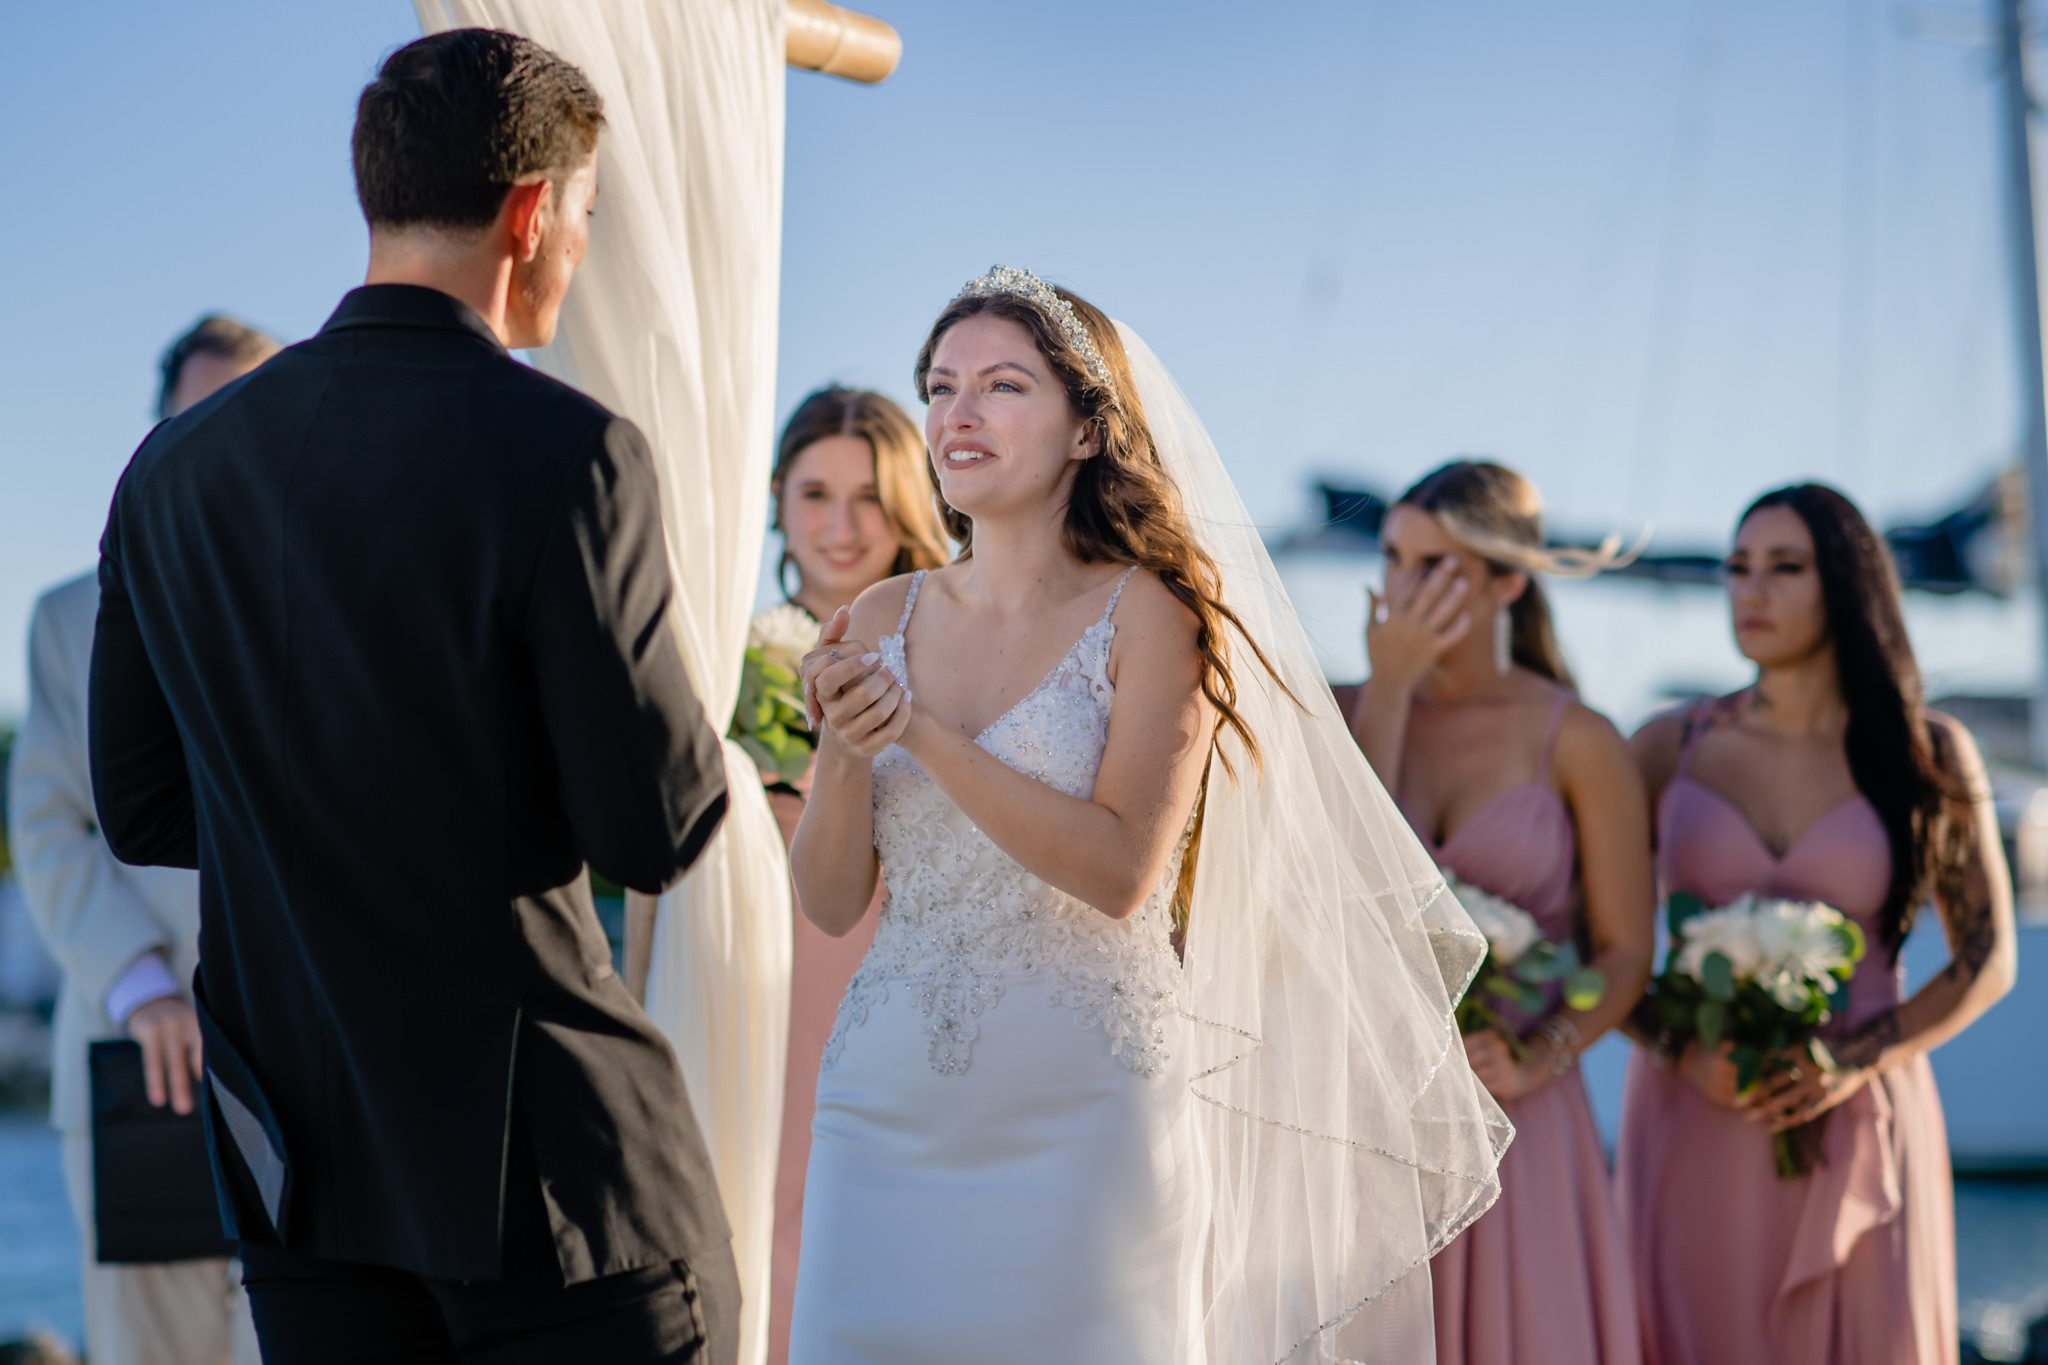 Bride saying her vows to her groom at a Key West wedding.